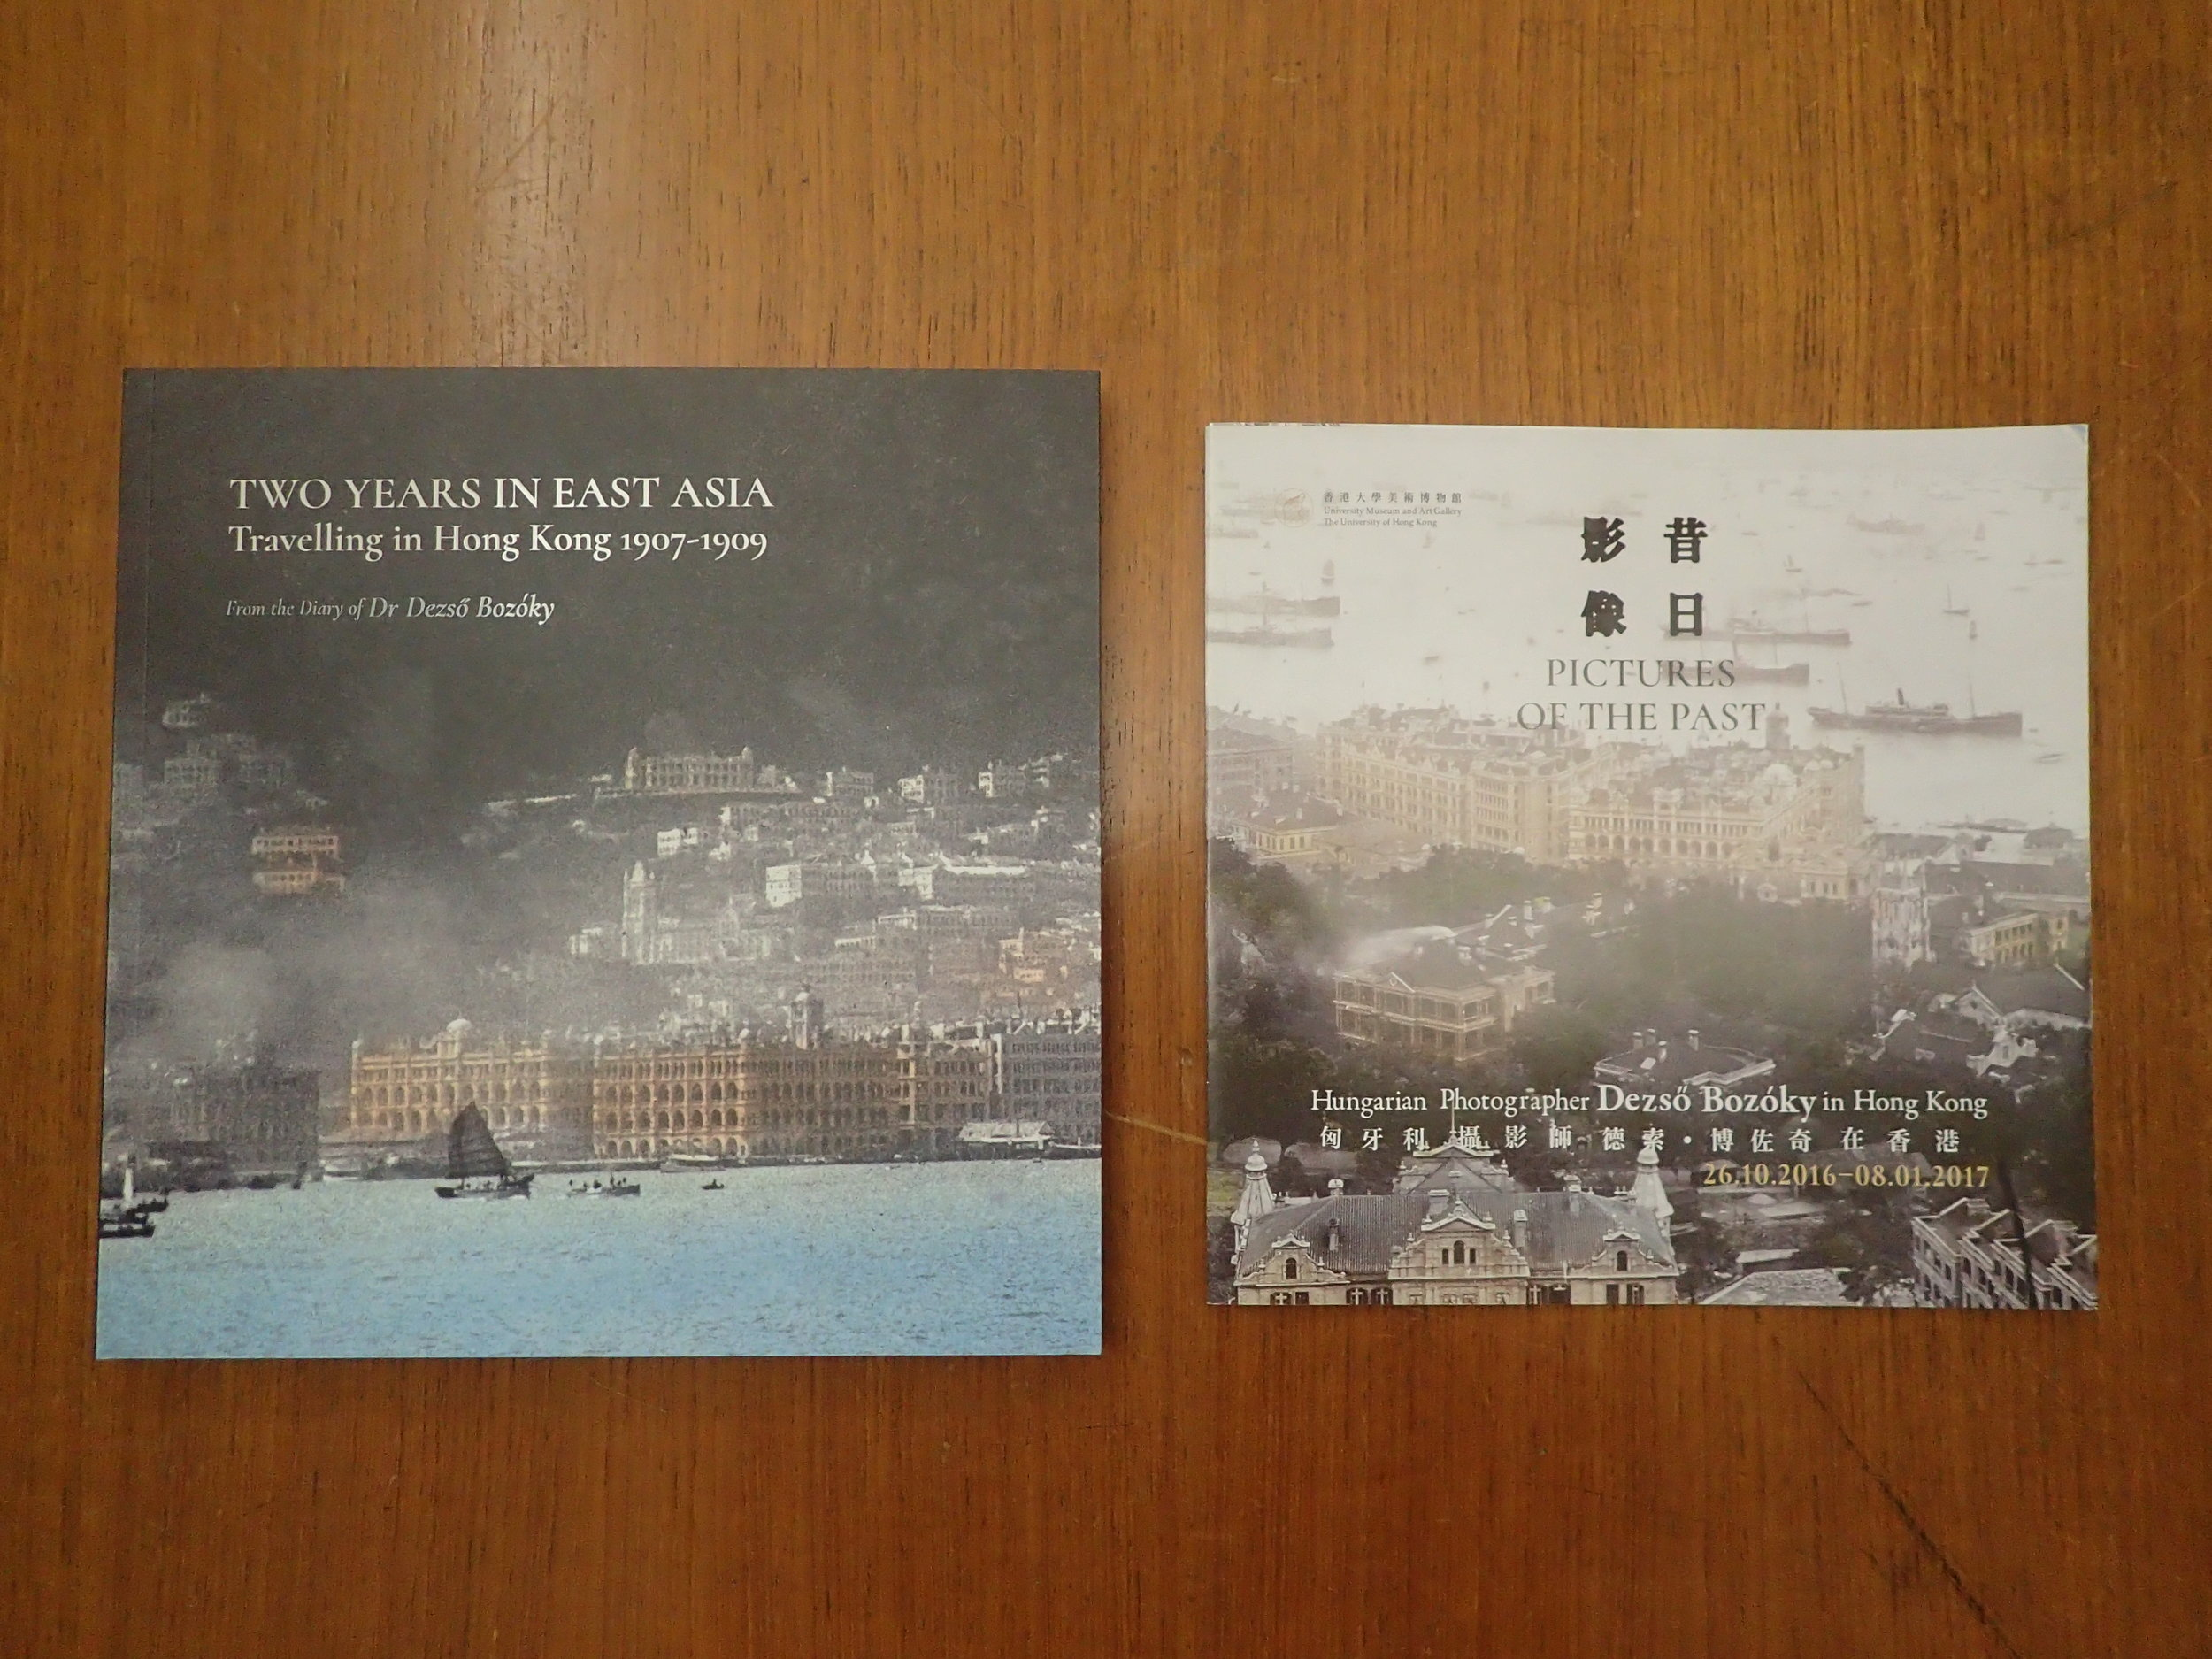 Cover pages of the catalogue and exhibition leaflet